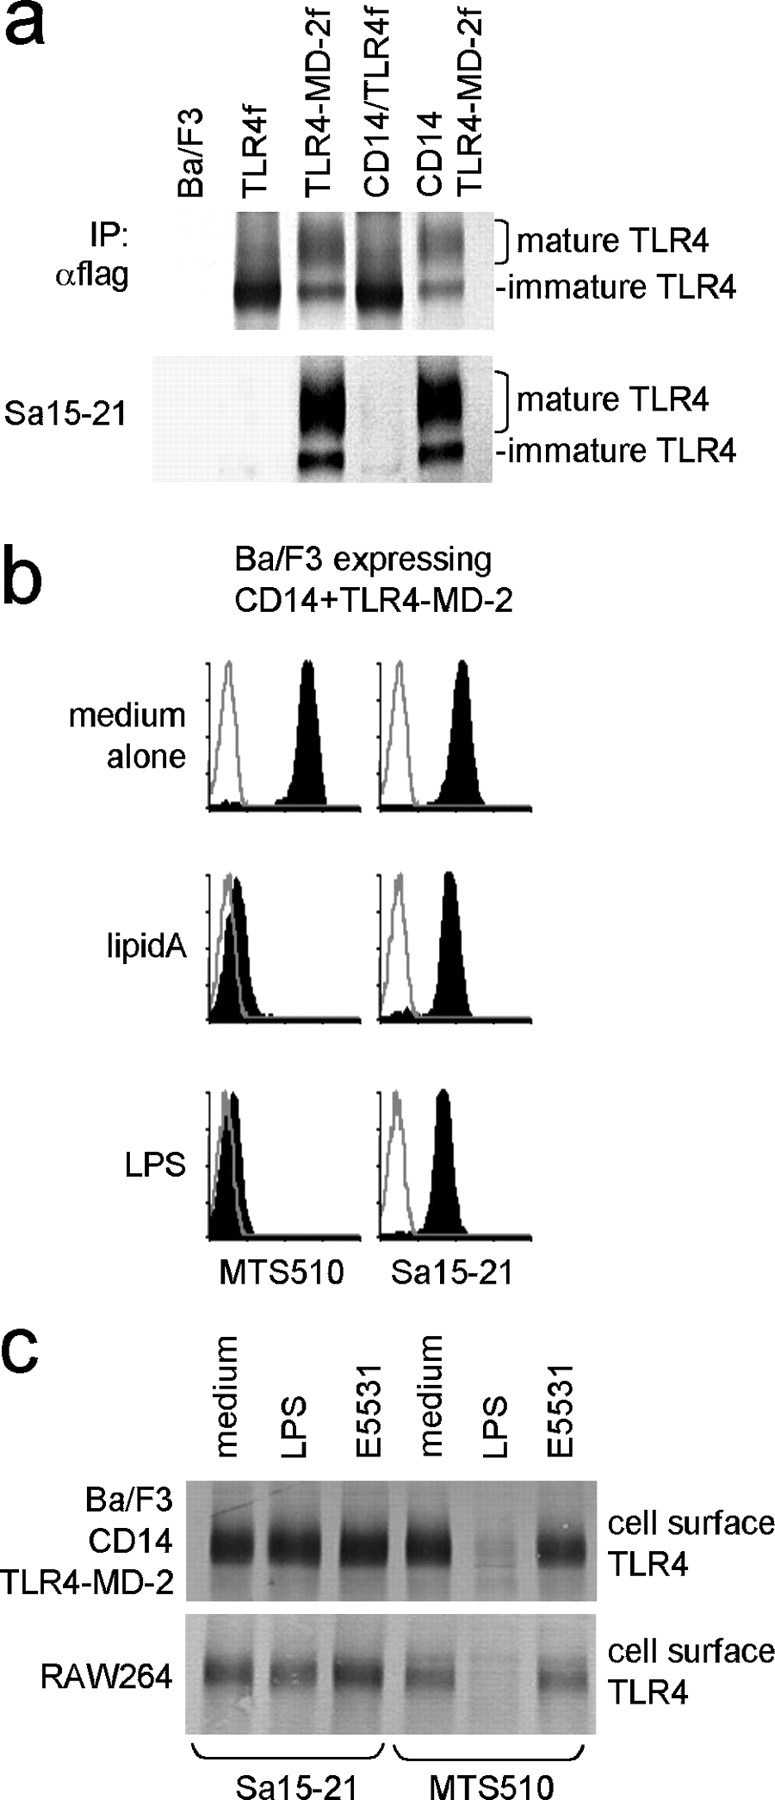 A novel mAb to TLR4-MD-2 reveals the LPS-triggered change of cell surface TLR4-MD-2. (a) Immunoprecipitation with anti-flag (top) or Sa15-21 (bottom) was conducted with Ba/F3 transfectants expressing the indicated molecules (Materials and Methods). The precipitates were probed with rabbit anti–mouse TLR4 sera followed by goat anti–rabbit alkaline phosphatase. Only immature, smaller TLR4 is detected in cells expressing TLR4 alone (top, TLR4f and CD14/TLR4f), because TLR4 without MD-2 cannot reach the cell surface. (b) Ba/F3 transfectants expressing CD14 and TLR4-MD-2 were stimulated with medium alone, 1 μg/ml lipid A, or 1 μg/ml LPS at 37°C for 30 min. Cells were stained with biotinylated MTS510 mAb or Sa15-21 as indicated, followed by streptavidin-PE. Open histograms depict staining with streptavidin-PE alone. (c) Ba/F3 cells expressing TLR4-MD-2 and CD14 (top) or RAW264 (bottom) were stimulated with medium, 2 μg/ml LPS, or 2 μg/ml lipid A antagonist E5531 as indicated at 37°C for 30 min. After washing, cells were subjected to cell surface biotinylation, detergent lysis, immunoprecipitation with MTS510 mAb (right three lanes) or Sa15-21 mAb (left three lanes), SDS-PAGE (7.5% polyacrylamide under nonreducing conditions), and electroblotting. Precipitated cell surface TLR4 was probed with streptavidin–alkaline phosphatase conjugate.